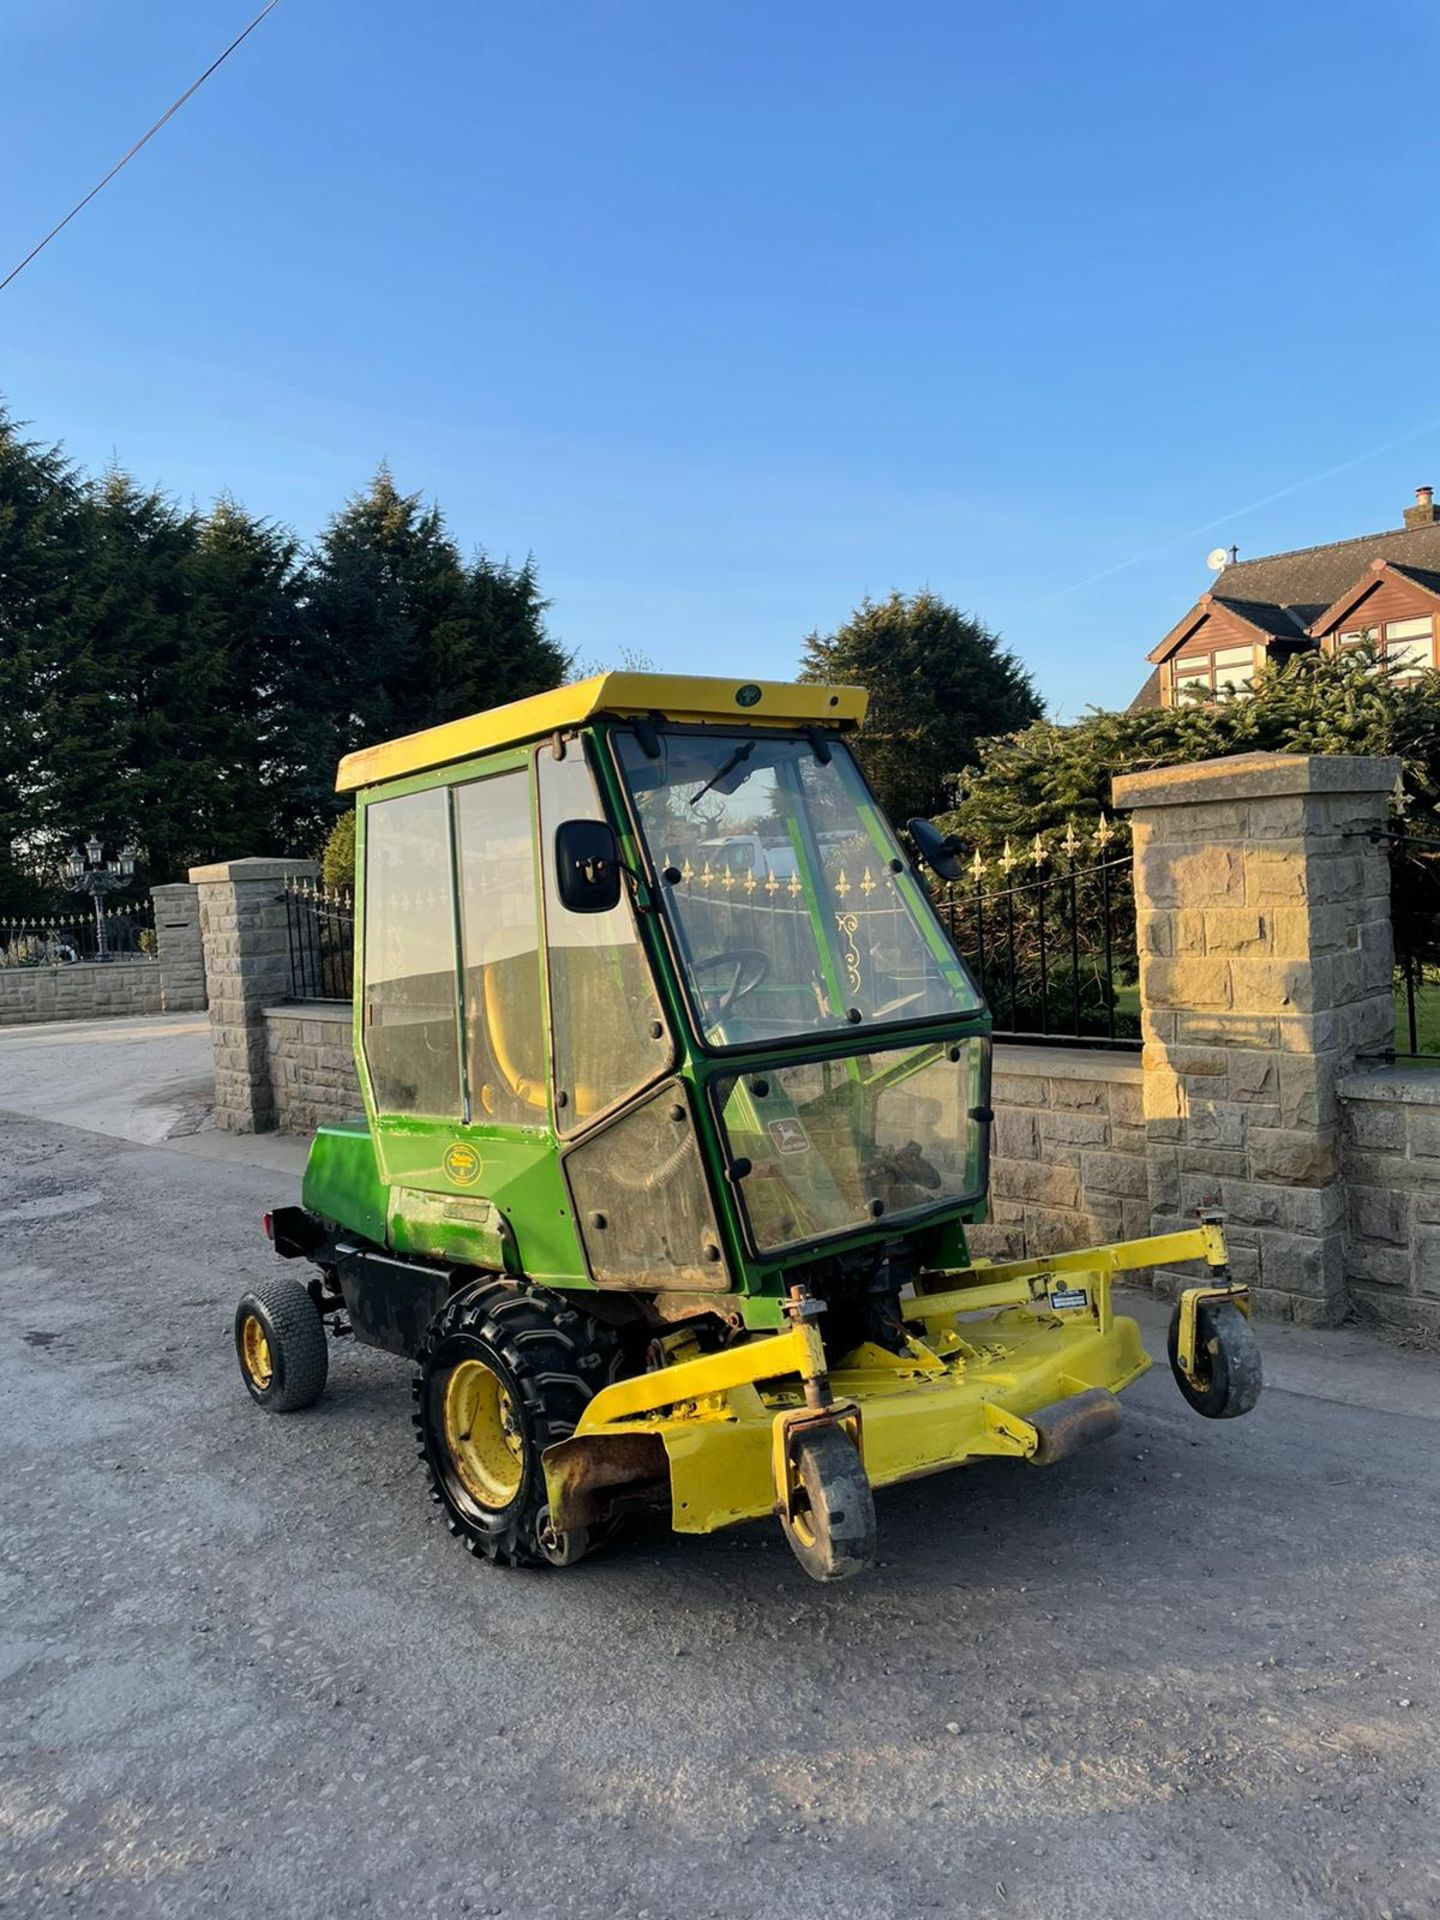 JOHN DEERE OUT FRONT RIDE ON LAWN MOWER, FULL GLASS CAB, ONLY 1603 HOURS *PLUS VAT* - Image 3 of 5